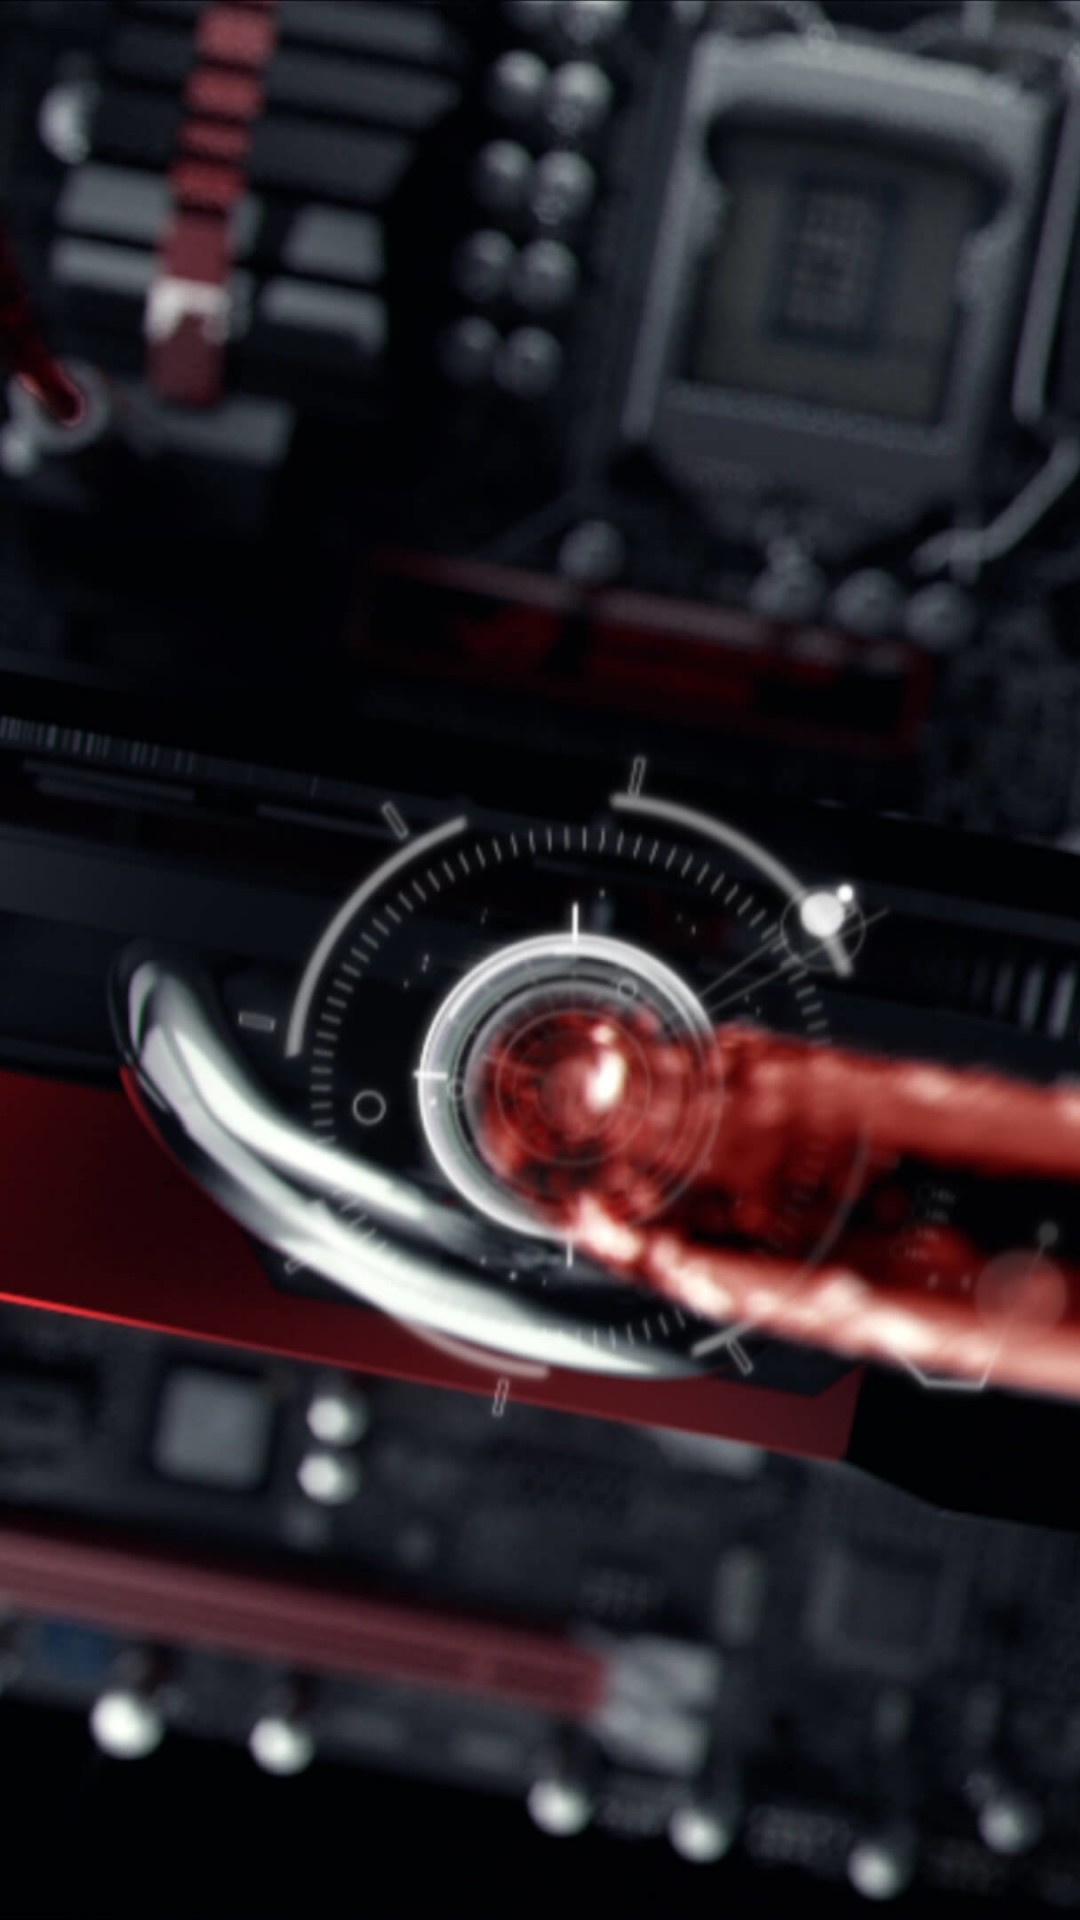 ASUS ROG Poseidon Liquid Cooling Wallpaper for SAMSUNG Galaxy Note 3